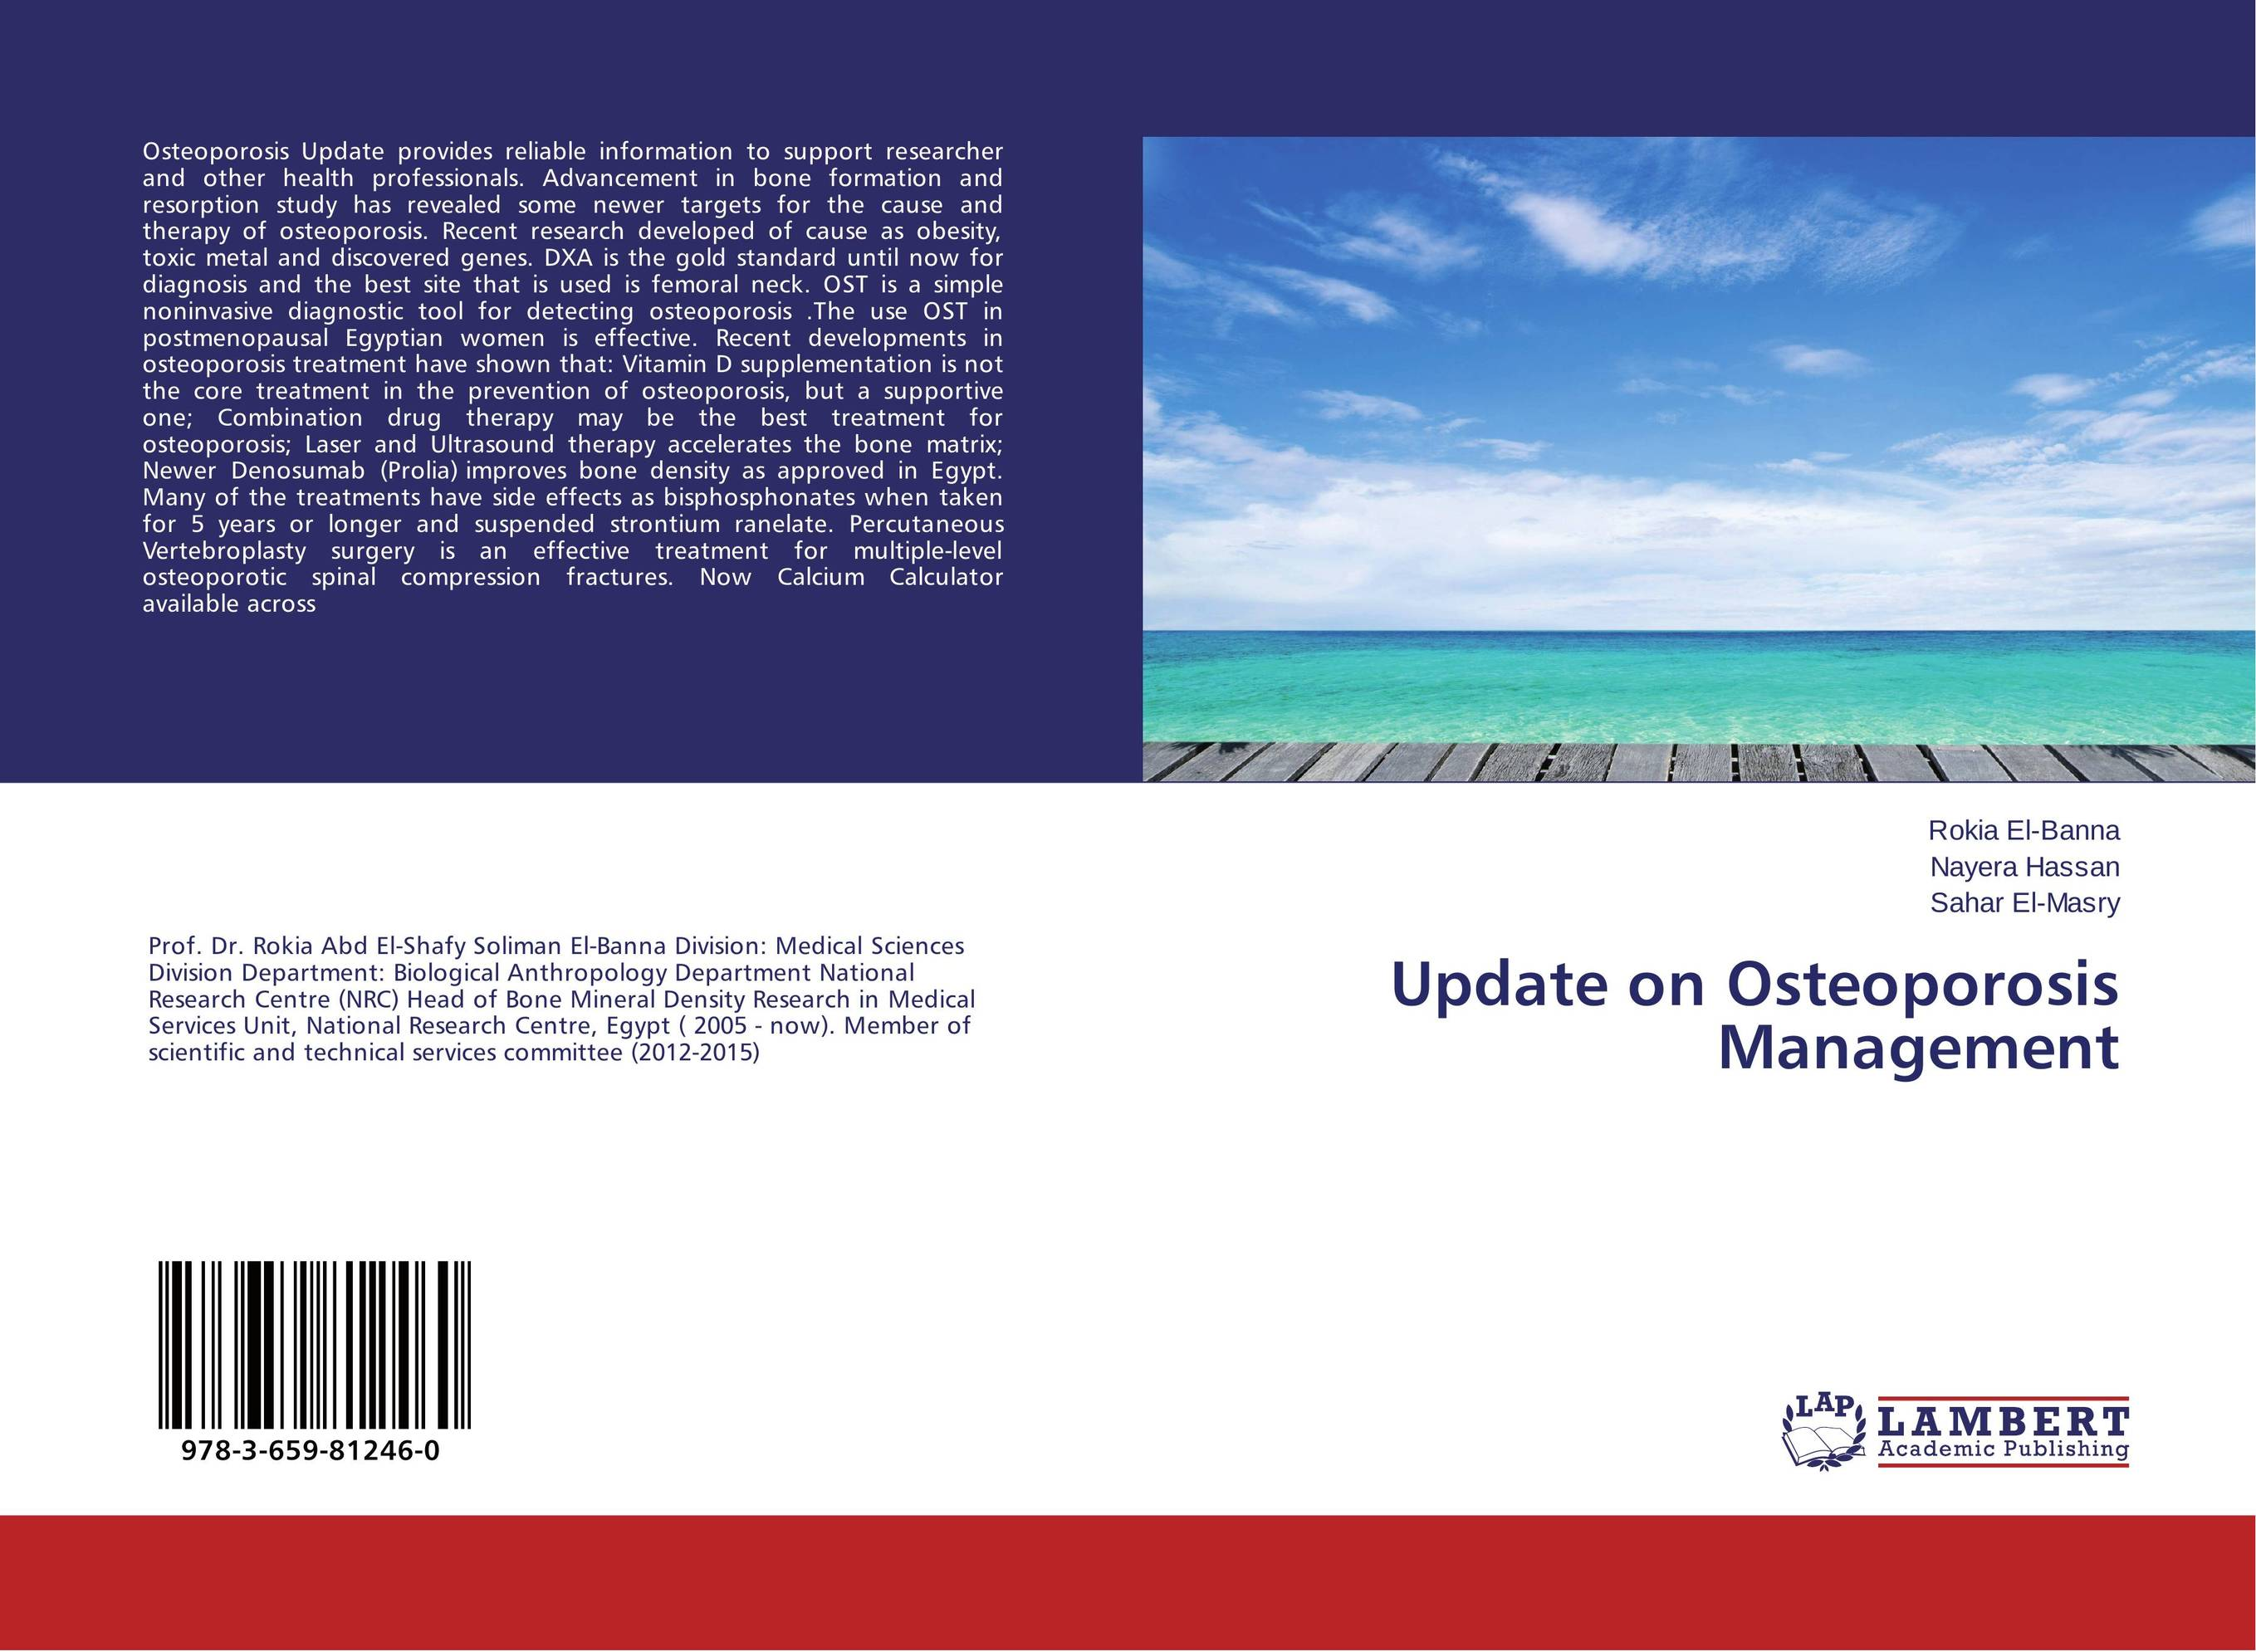 Update on Osteoporosis Management